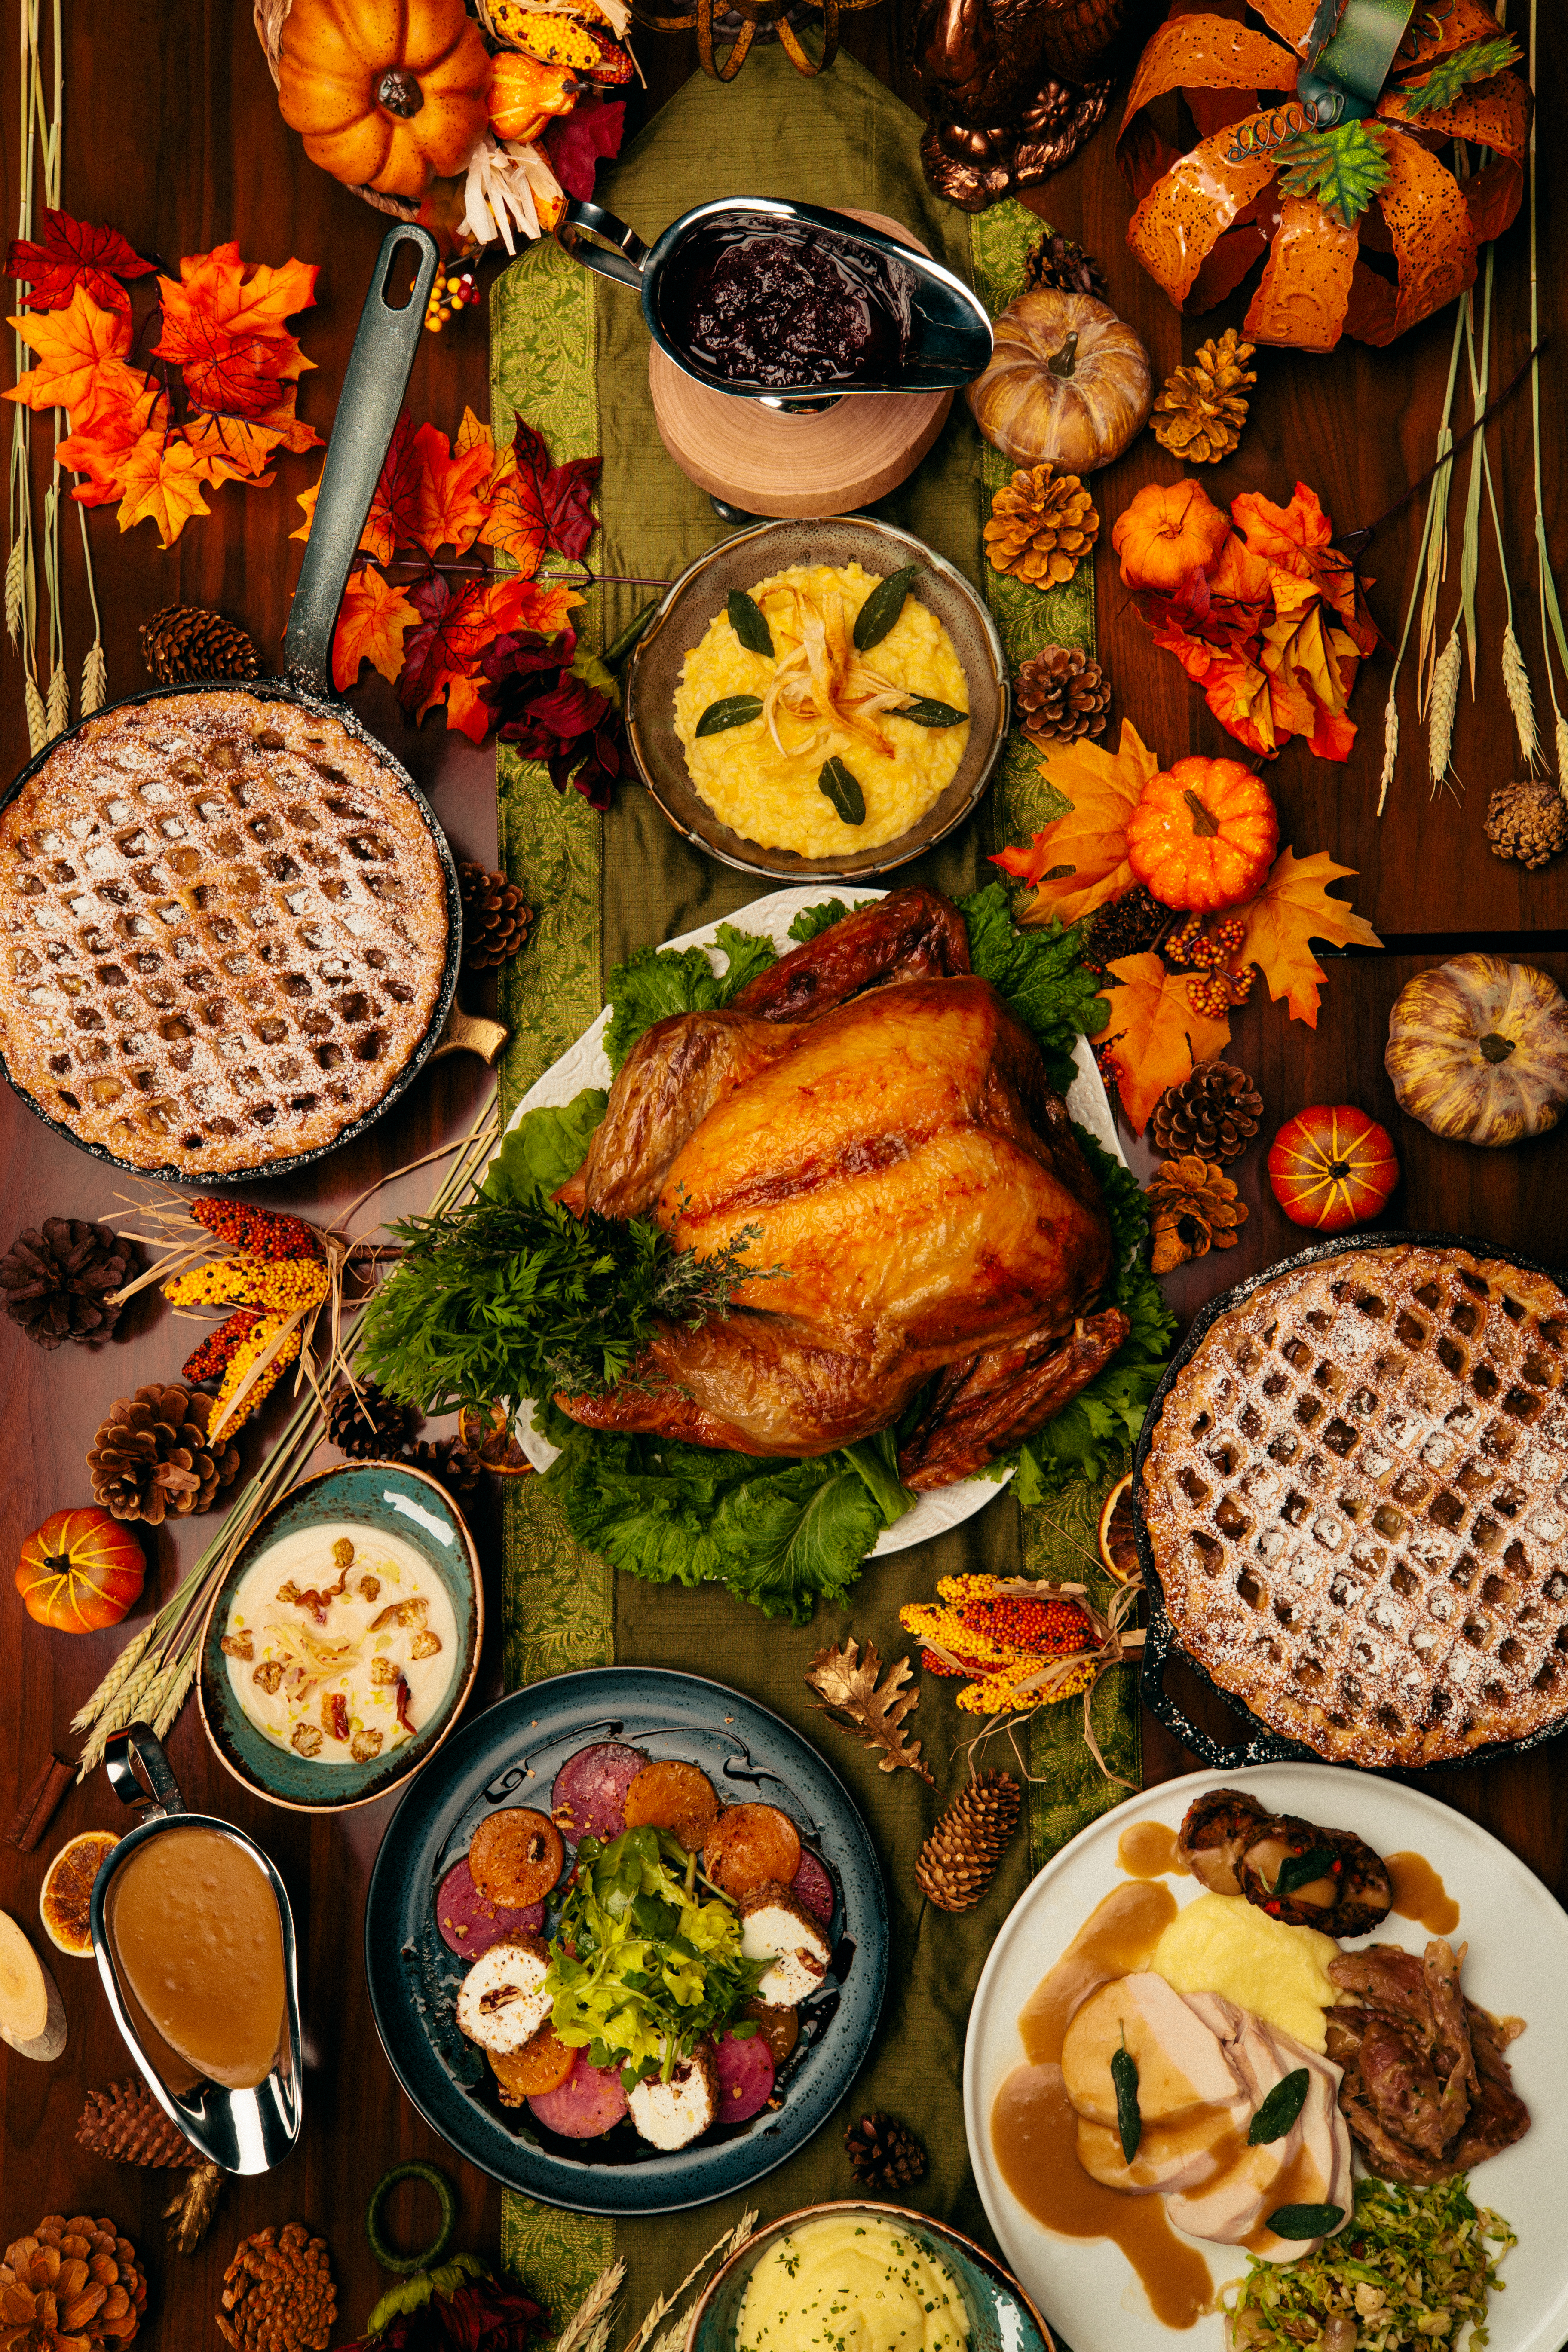 Where to Dine on Thanksgiving in Las Vegas